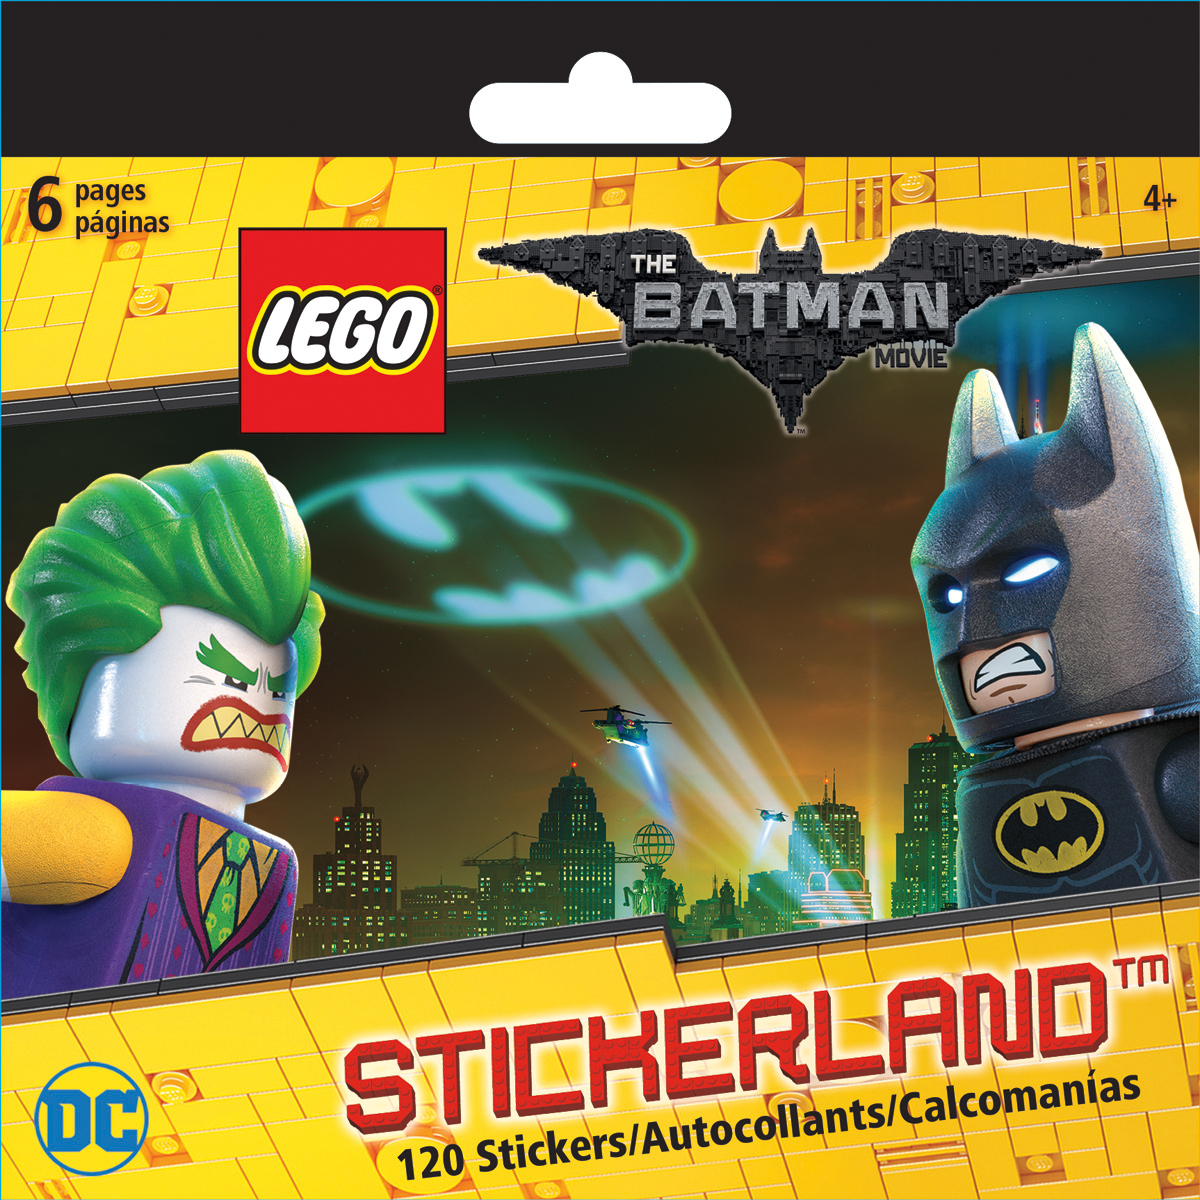 LEGO Mini Stickerland Pad 6/Pages-DC The Batman Movie